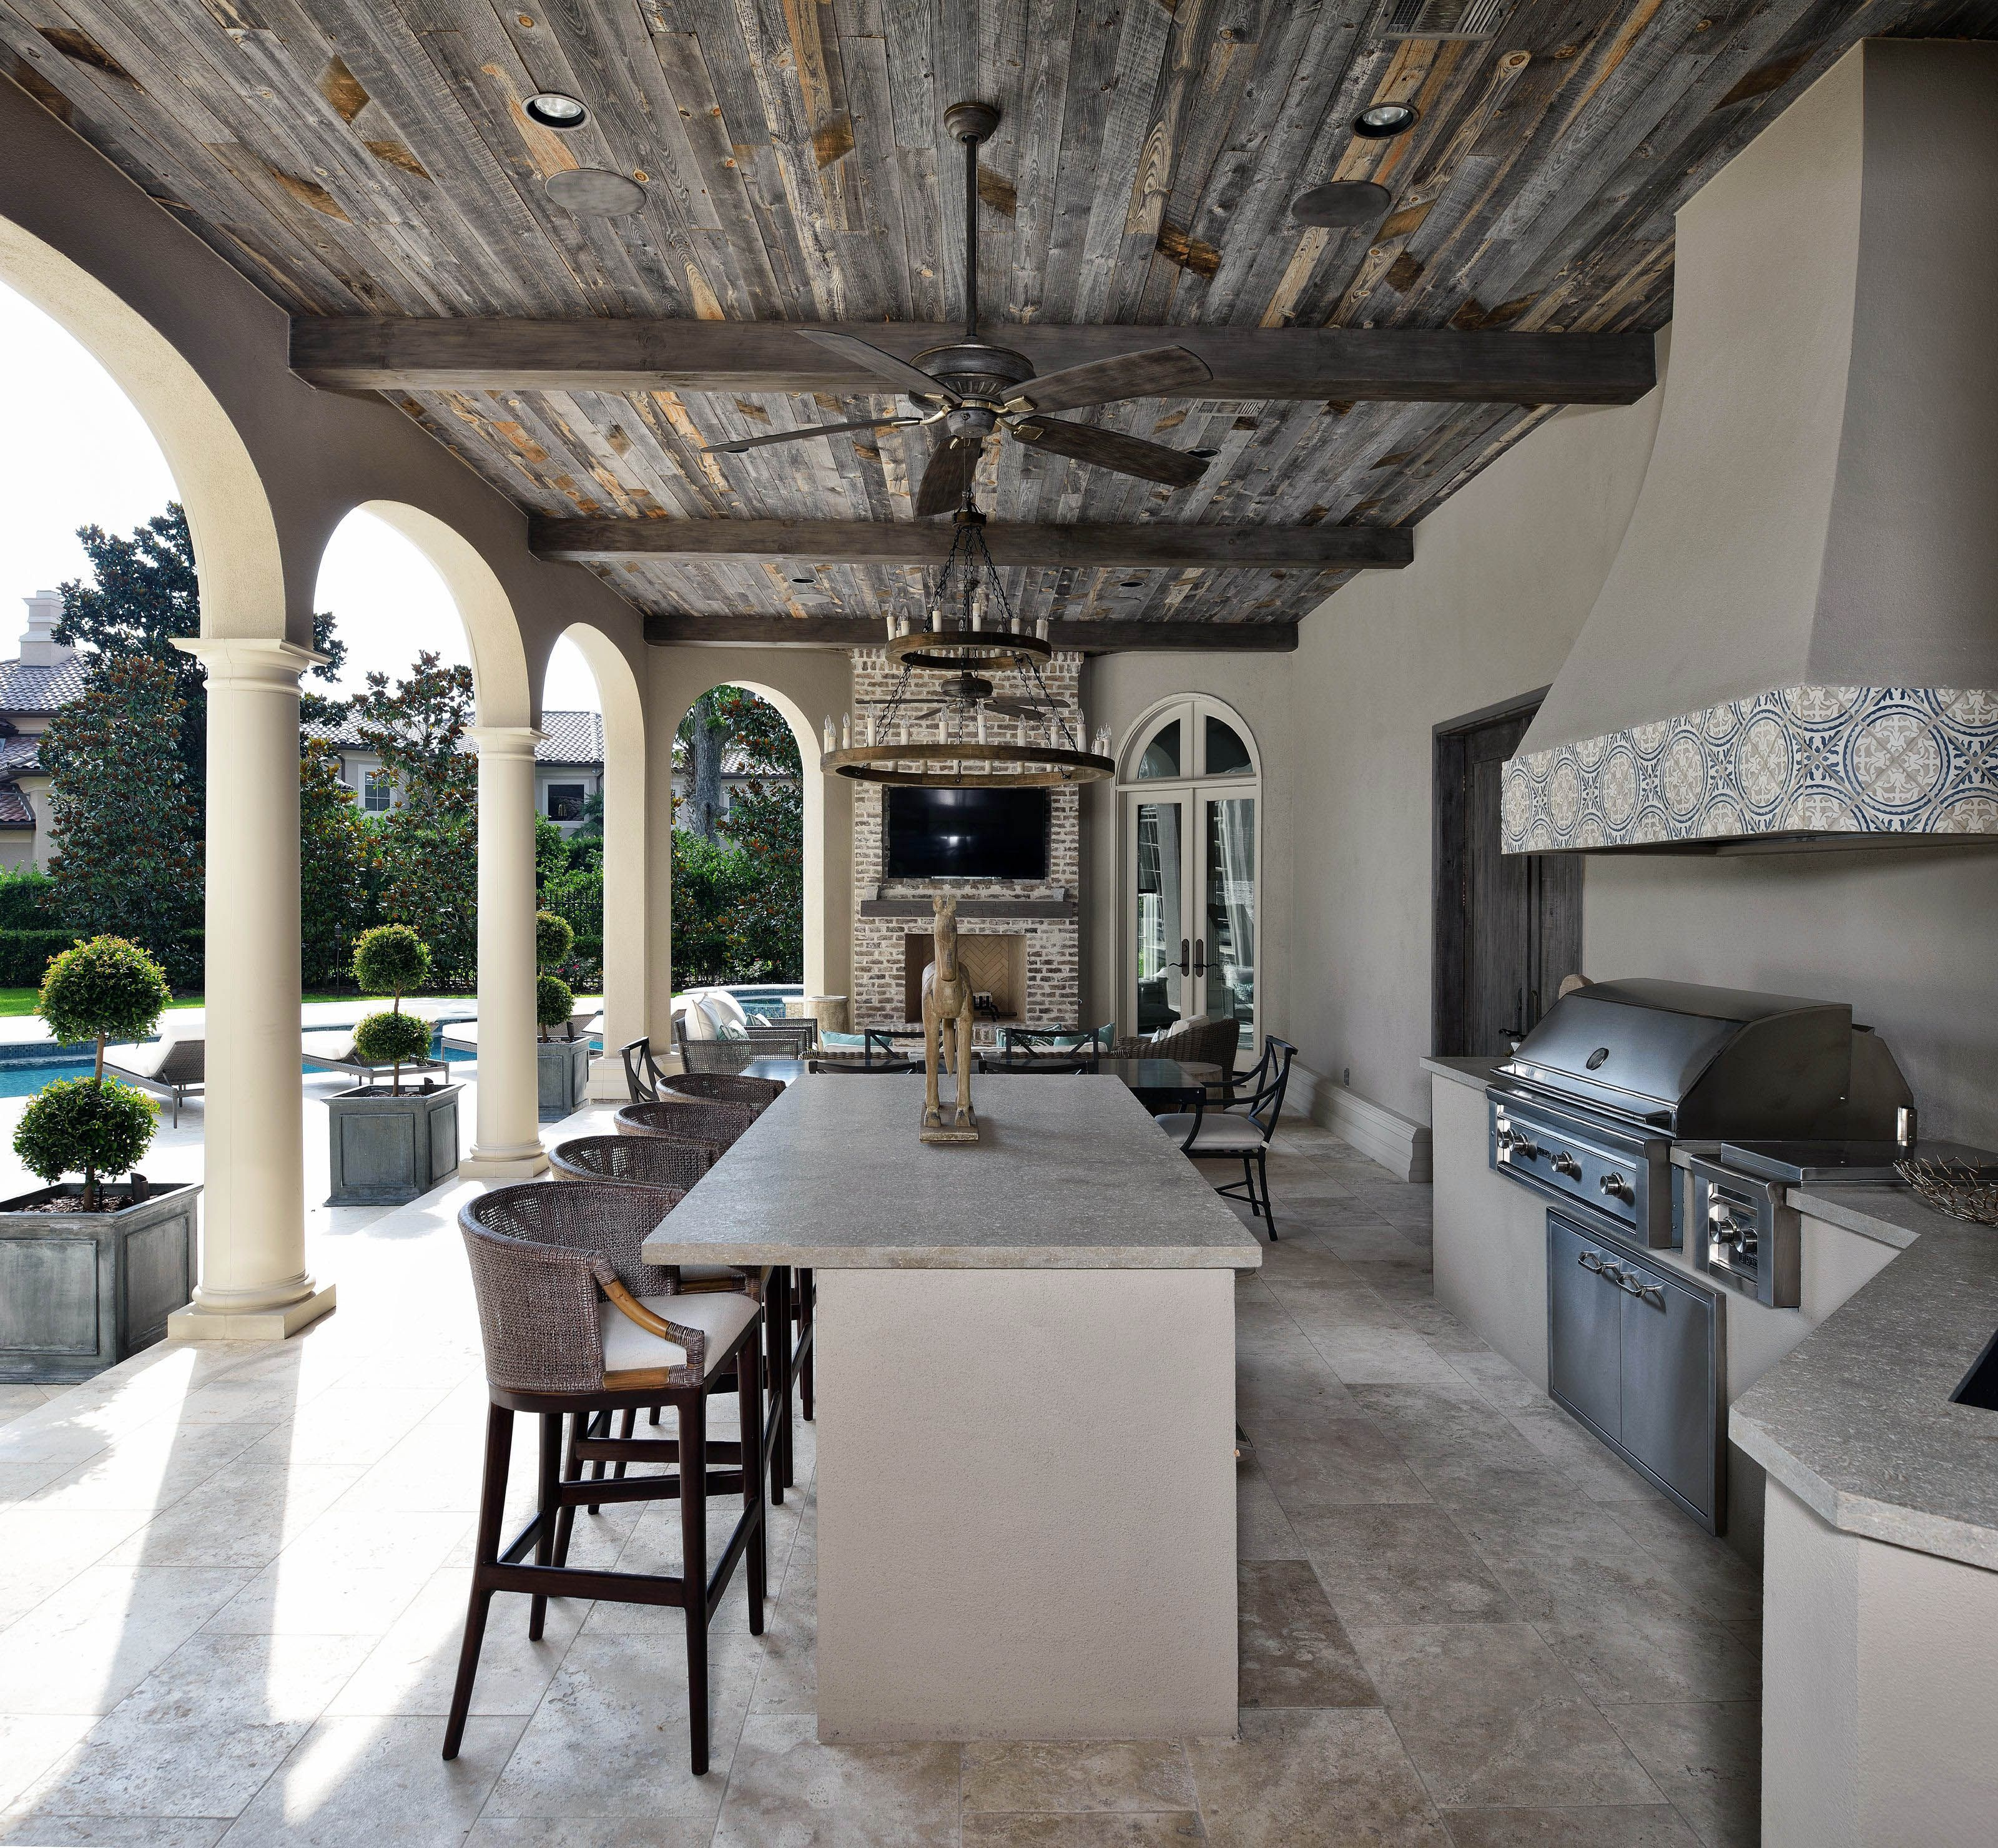 11 Best Outdoor Kitchen Ideas And Designs For Your Stunning Kitchen Outdoor Kitchen Design Backyard Patio Patio Design